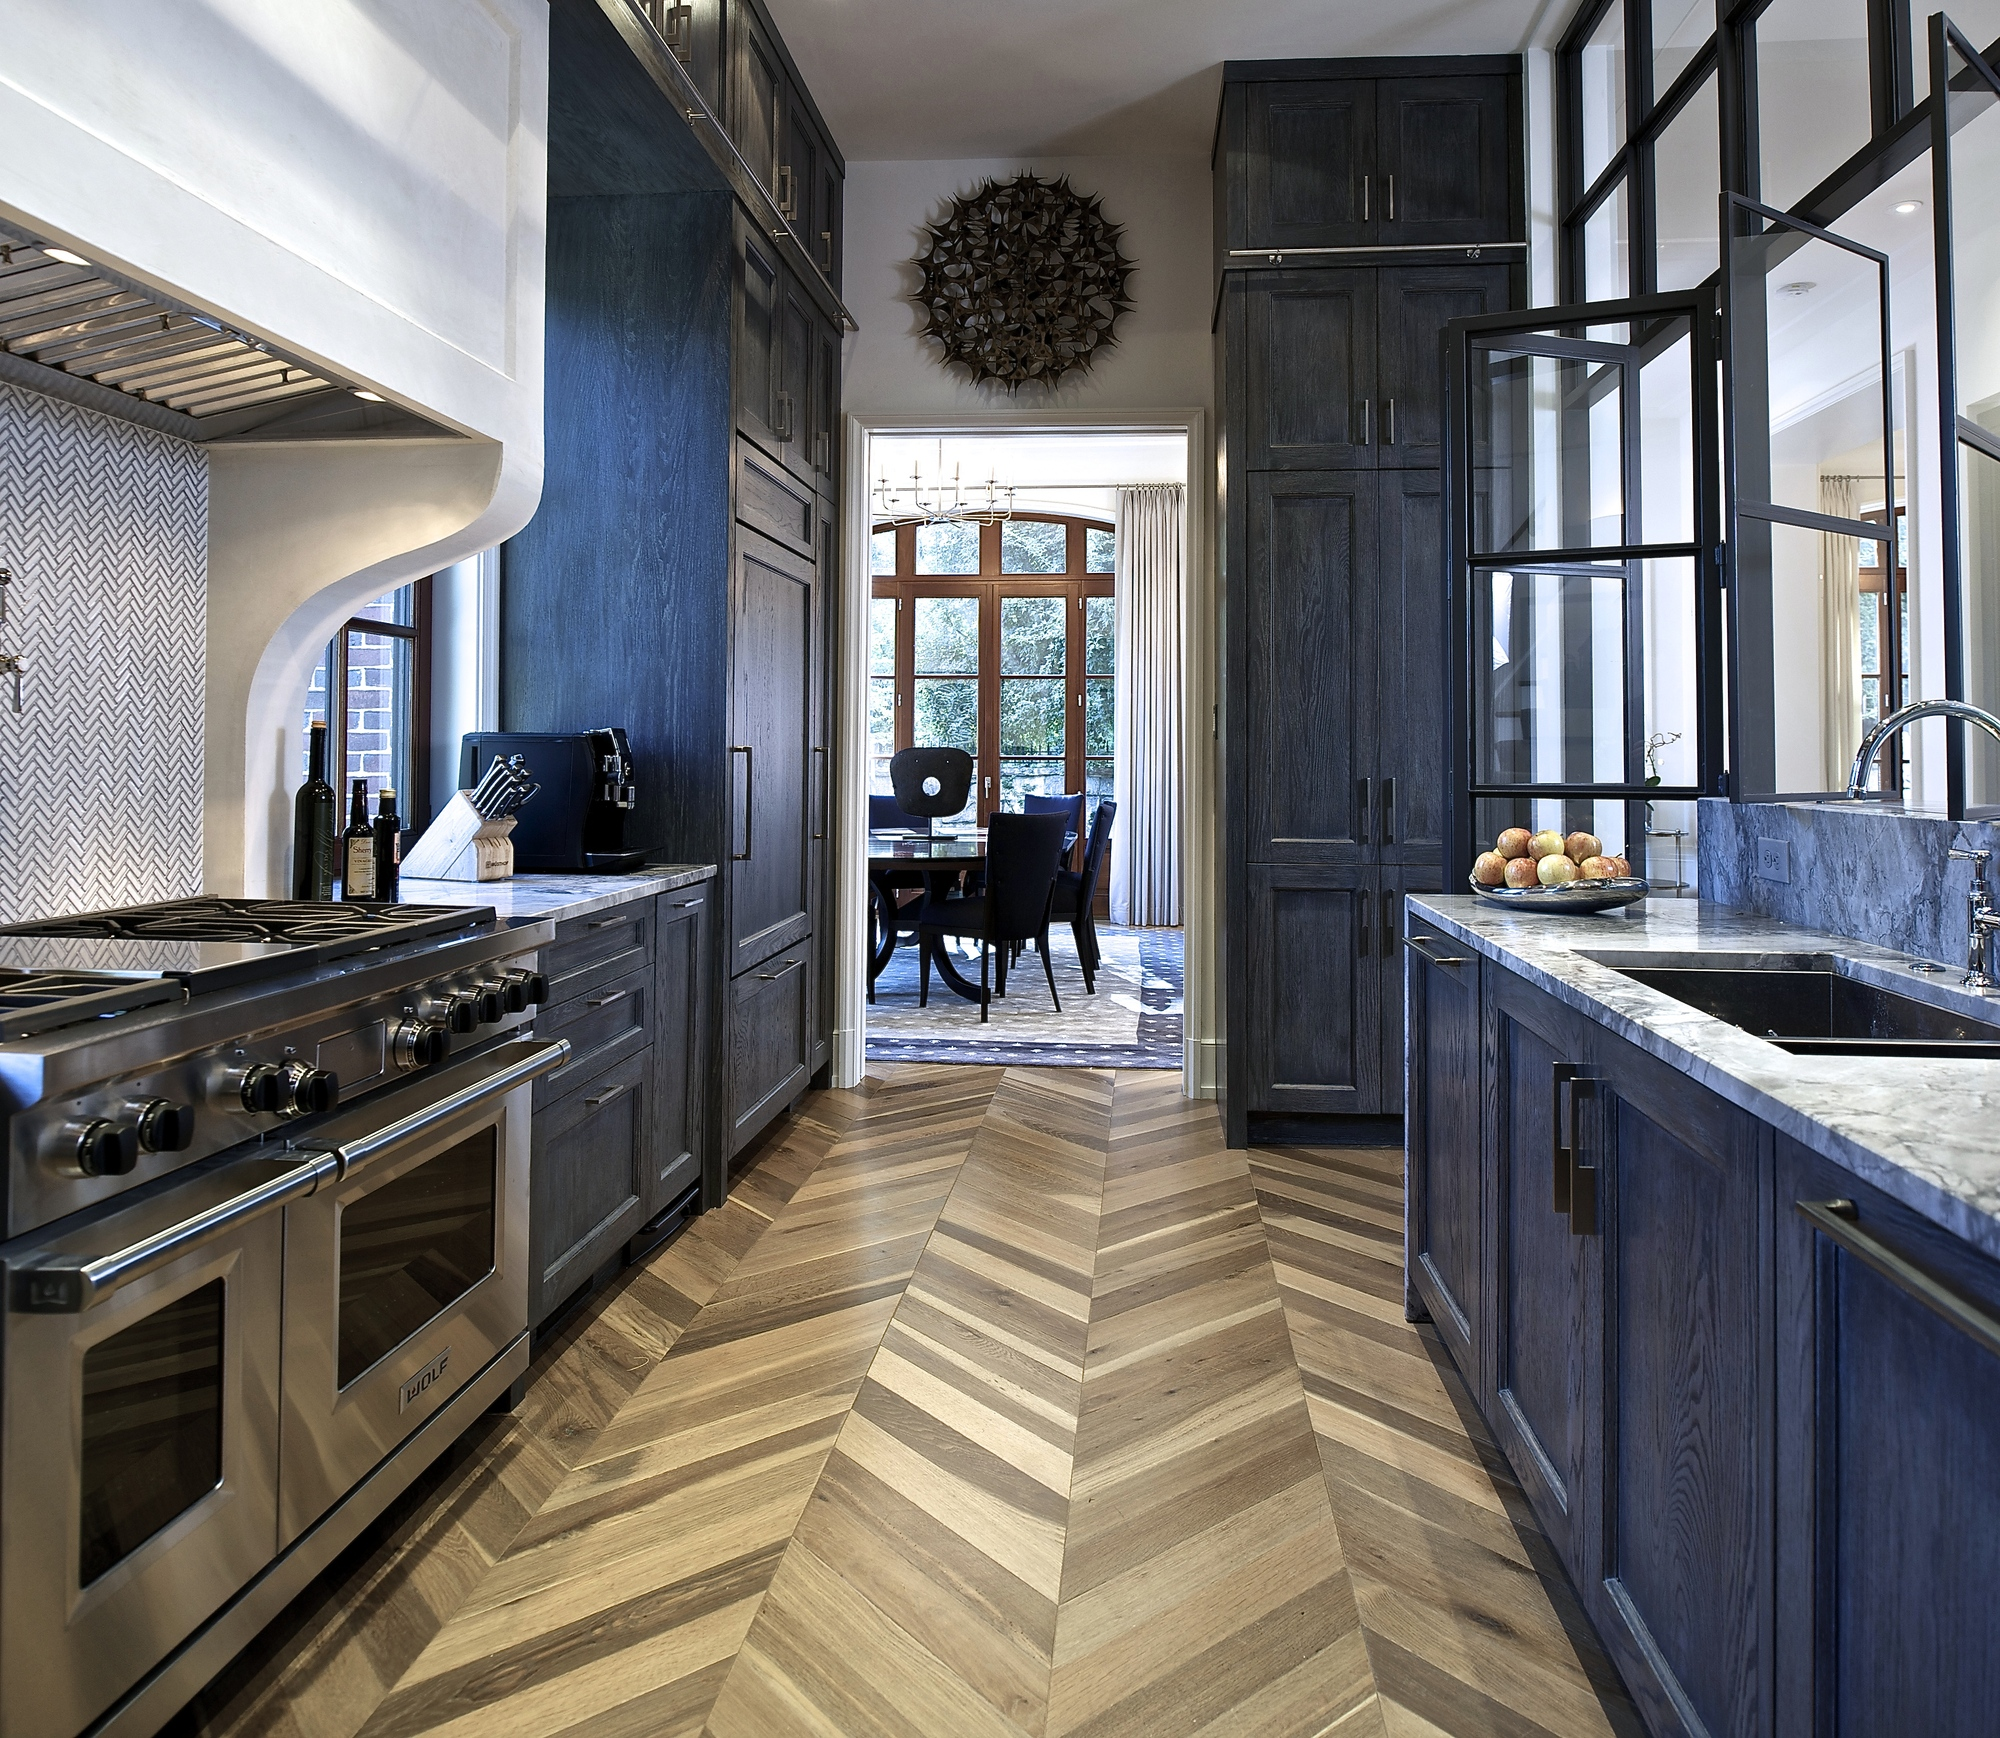 Gallery Of The Worlds Most Prominent Kitchen Design Contest Is - Kitchen design atlanta